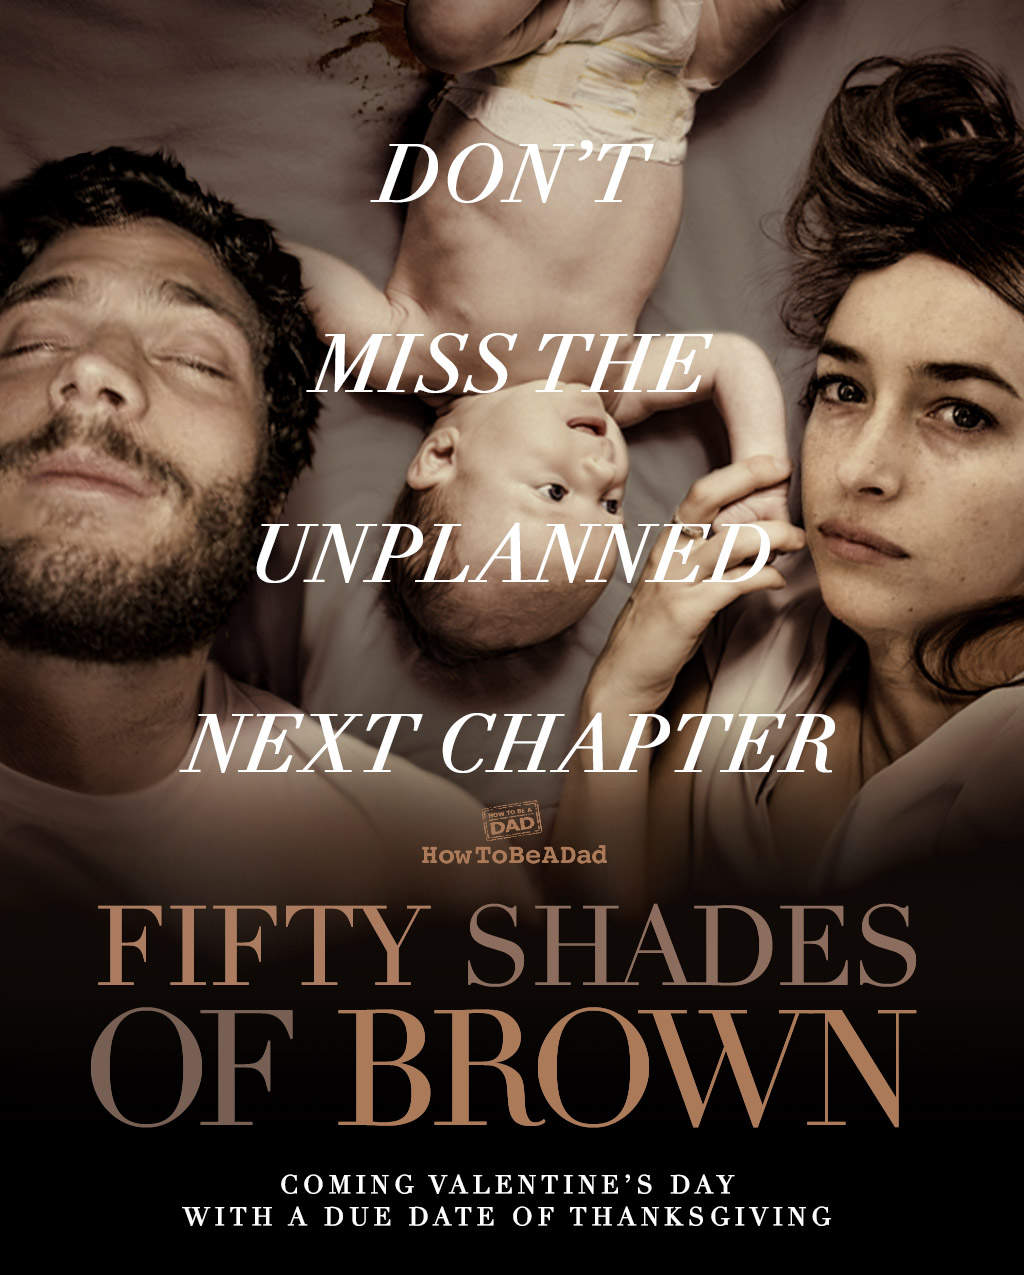 50 Shades of Grey Parody 50 Shades of Brown Poster